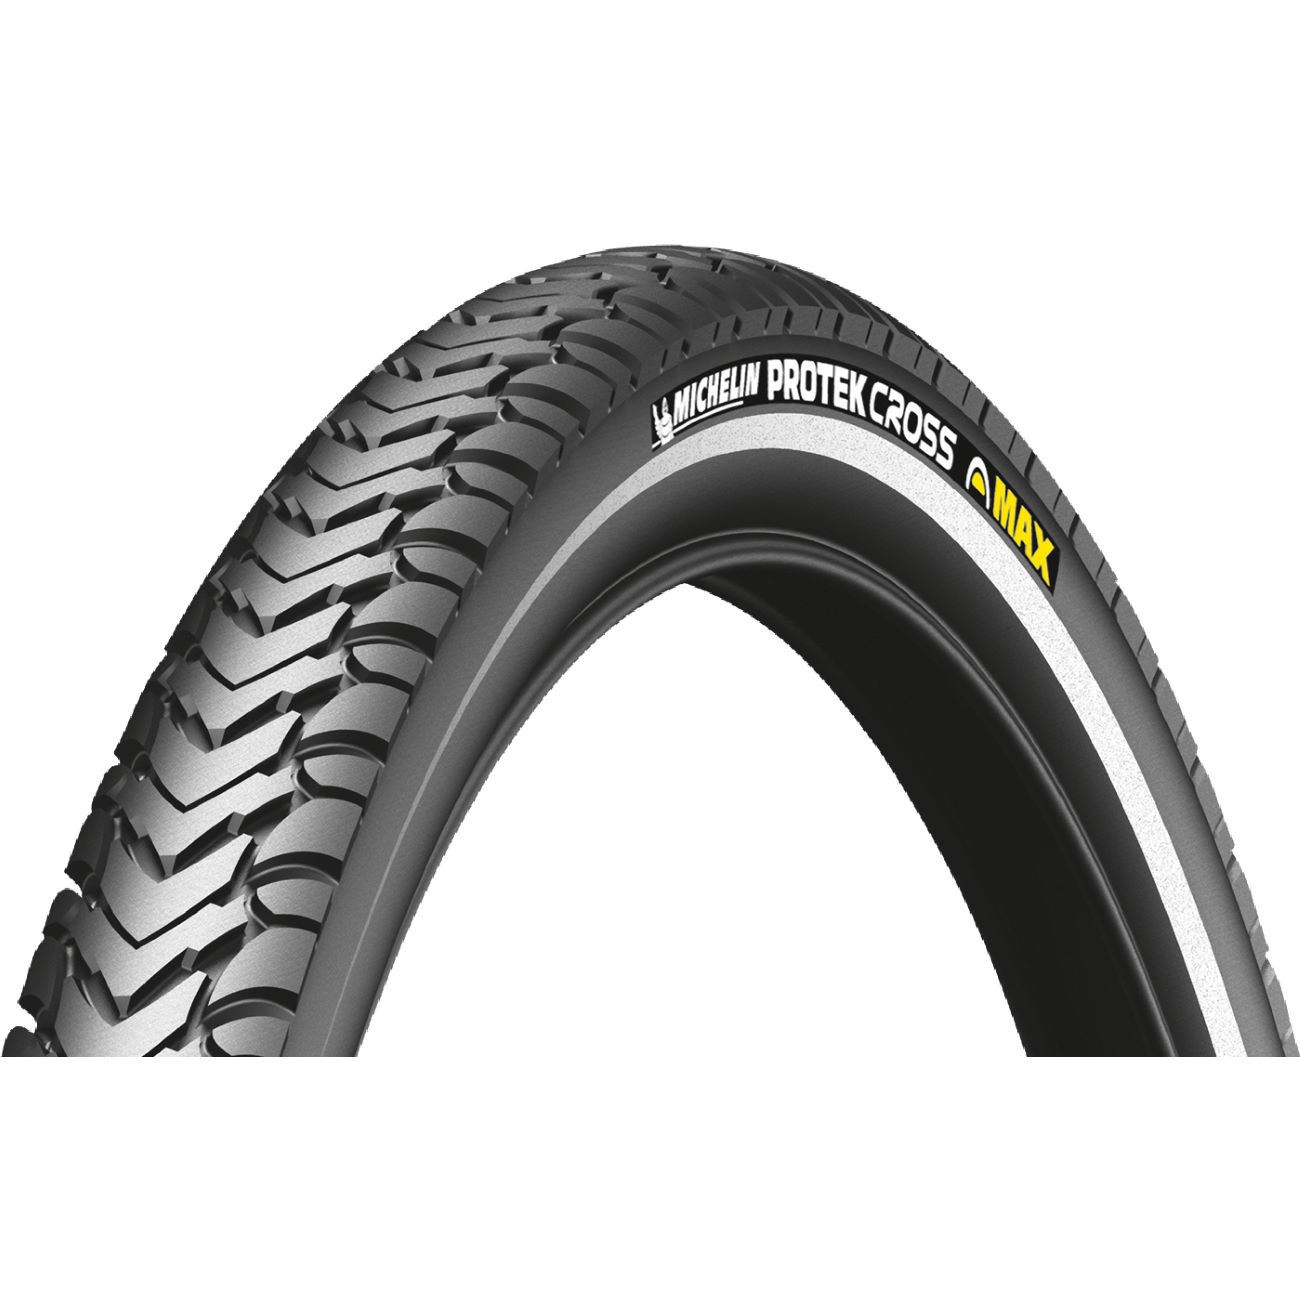 wiggle michelin protek cross max touring tyre city tyres. Black Bedroom Furniture Sets. Home Design Ideas